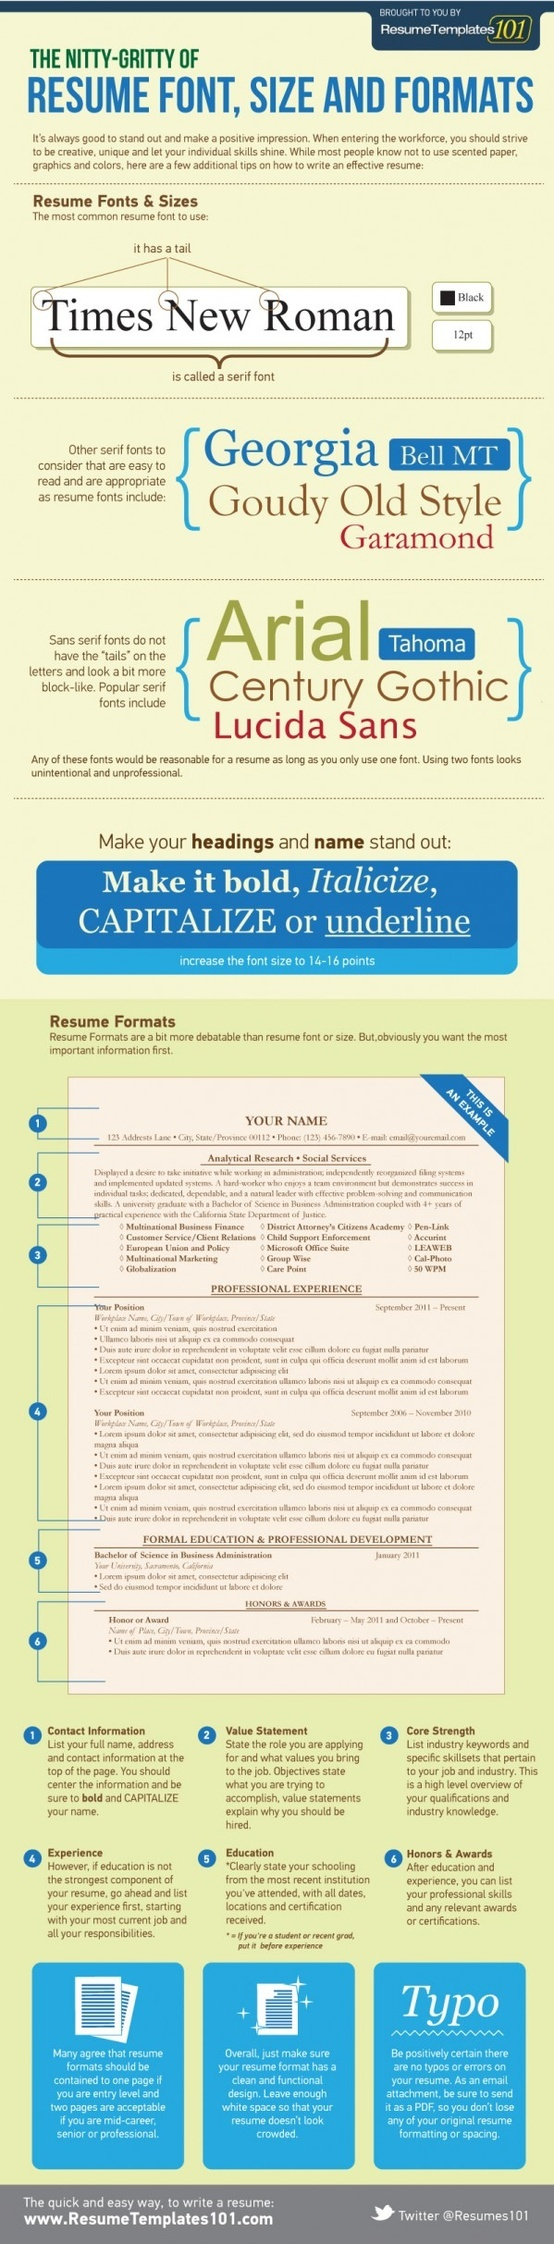 the nitty gritty of resume font size and formats - Resume Hints And Tips